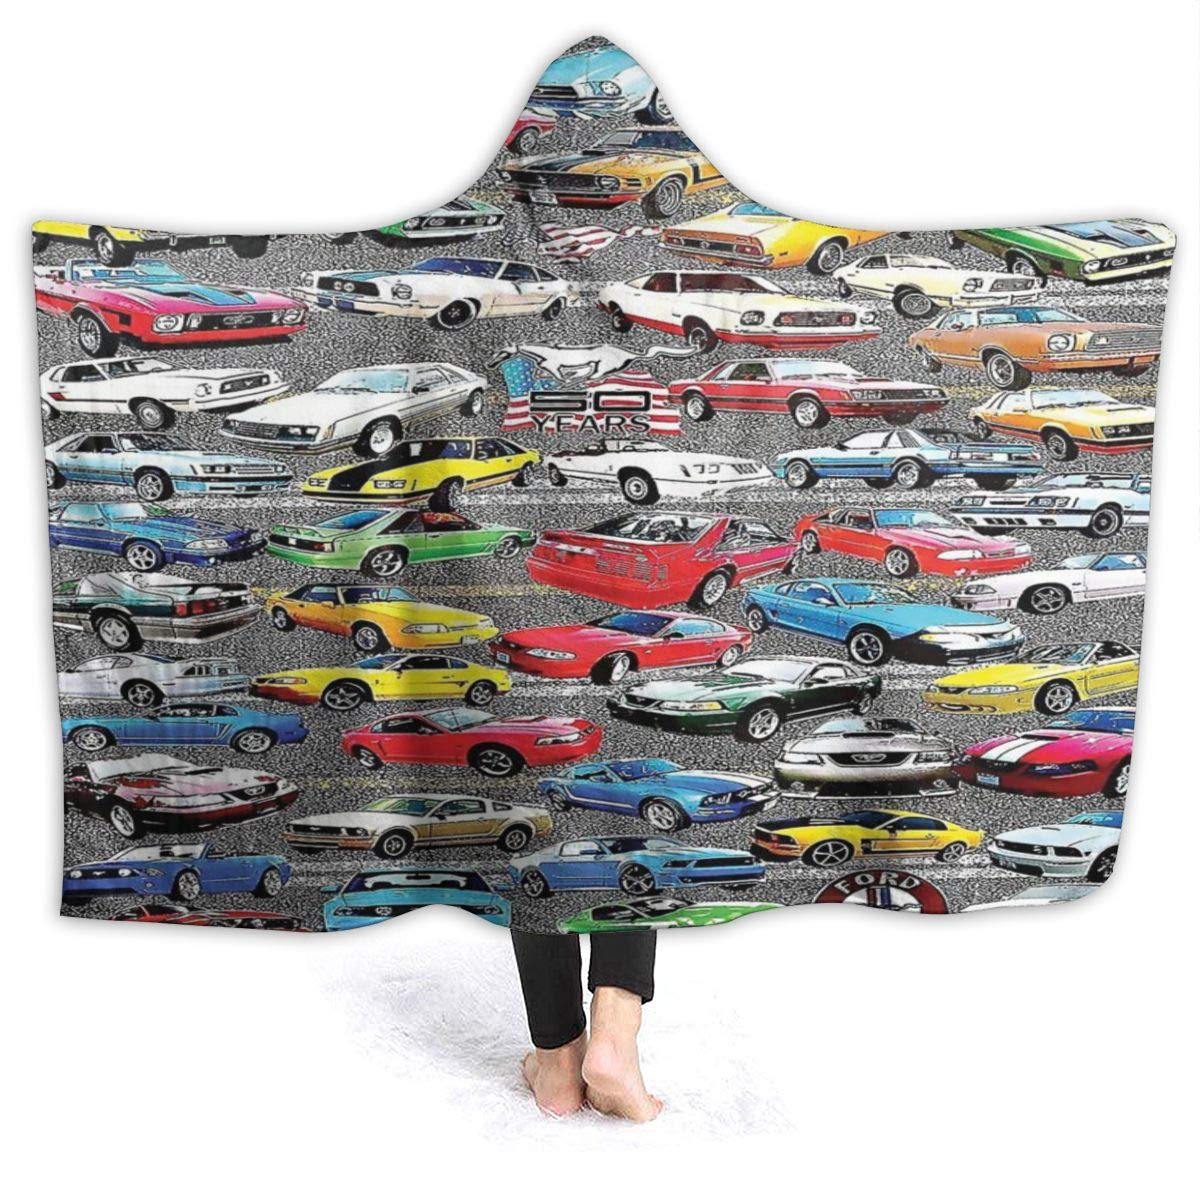 GREATN Colorful Kids Toy Card Pattern Hooded Blanket Microfiber Serape Anti-Static Hooded Robe Thermal Throw Sleeping Blankets for Sofa Bed Couch by GREATN